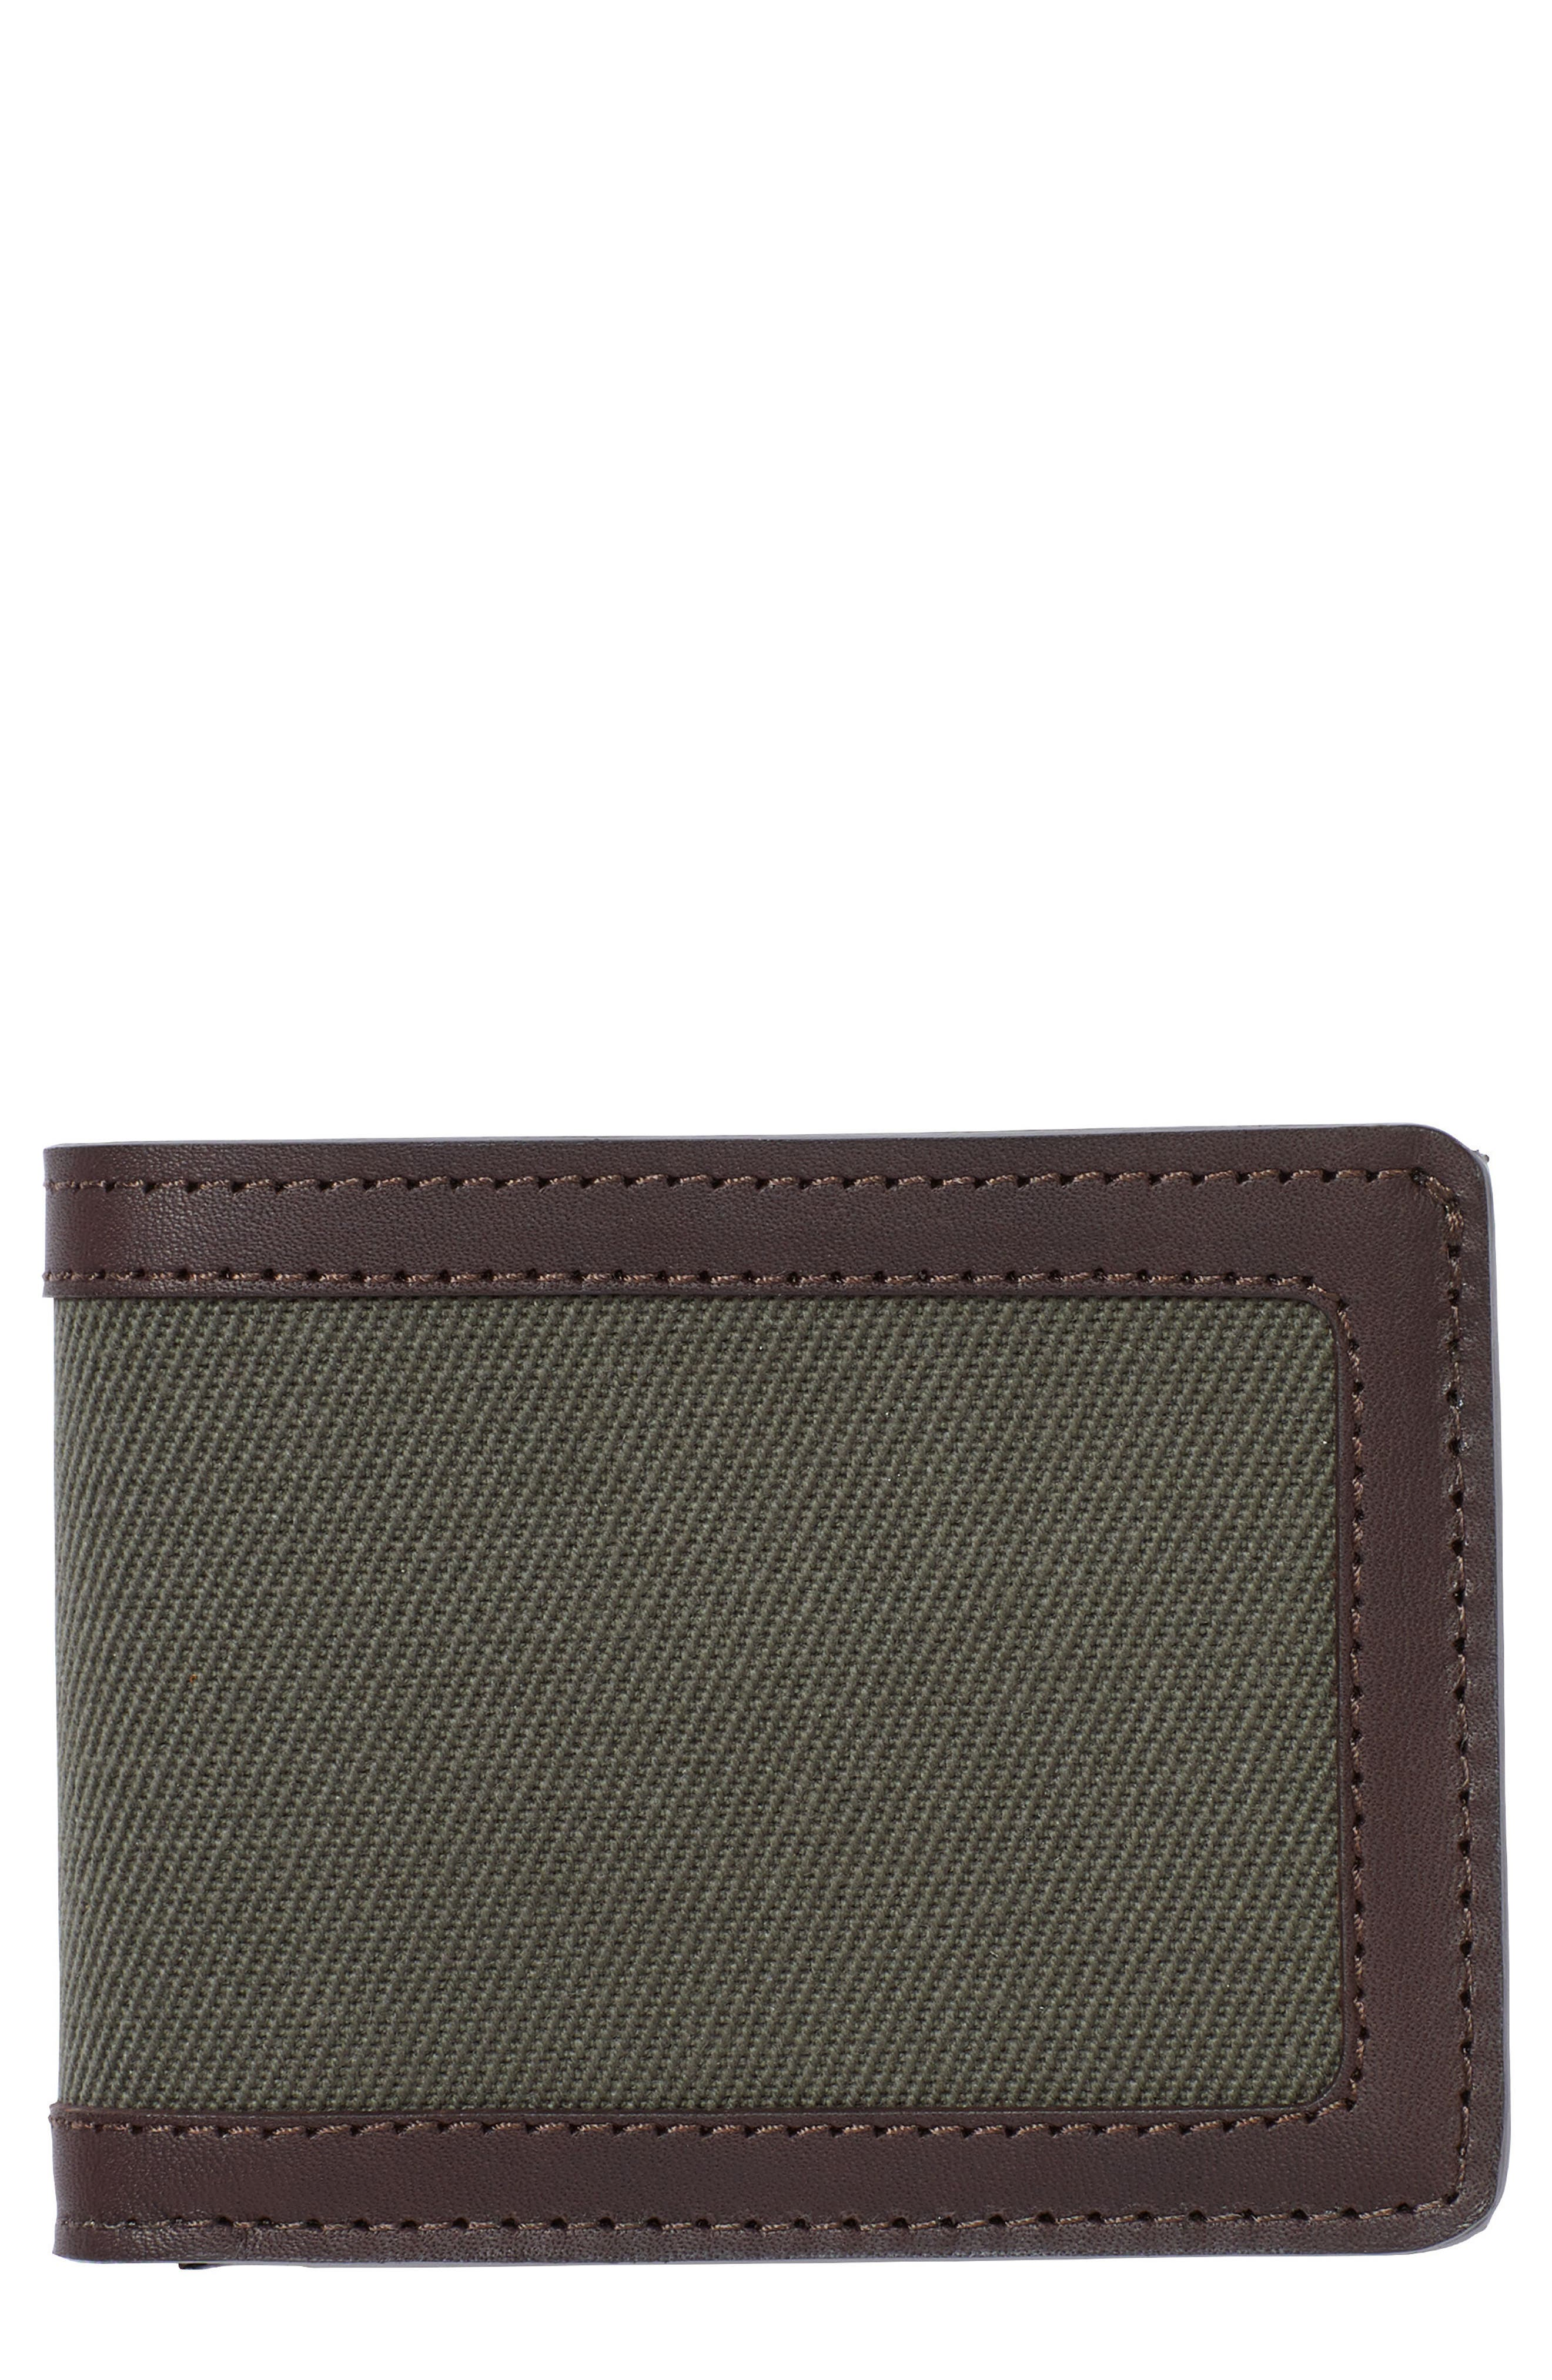 Main Image - Filsone Outfitter Leather & Canvas Bifold Wallet